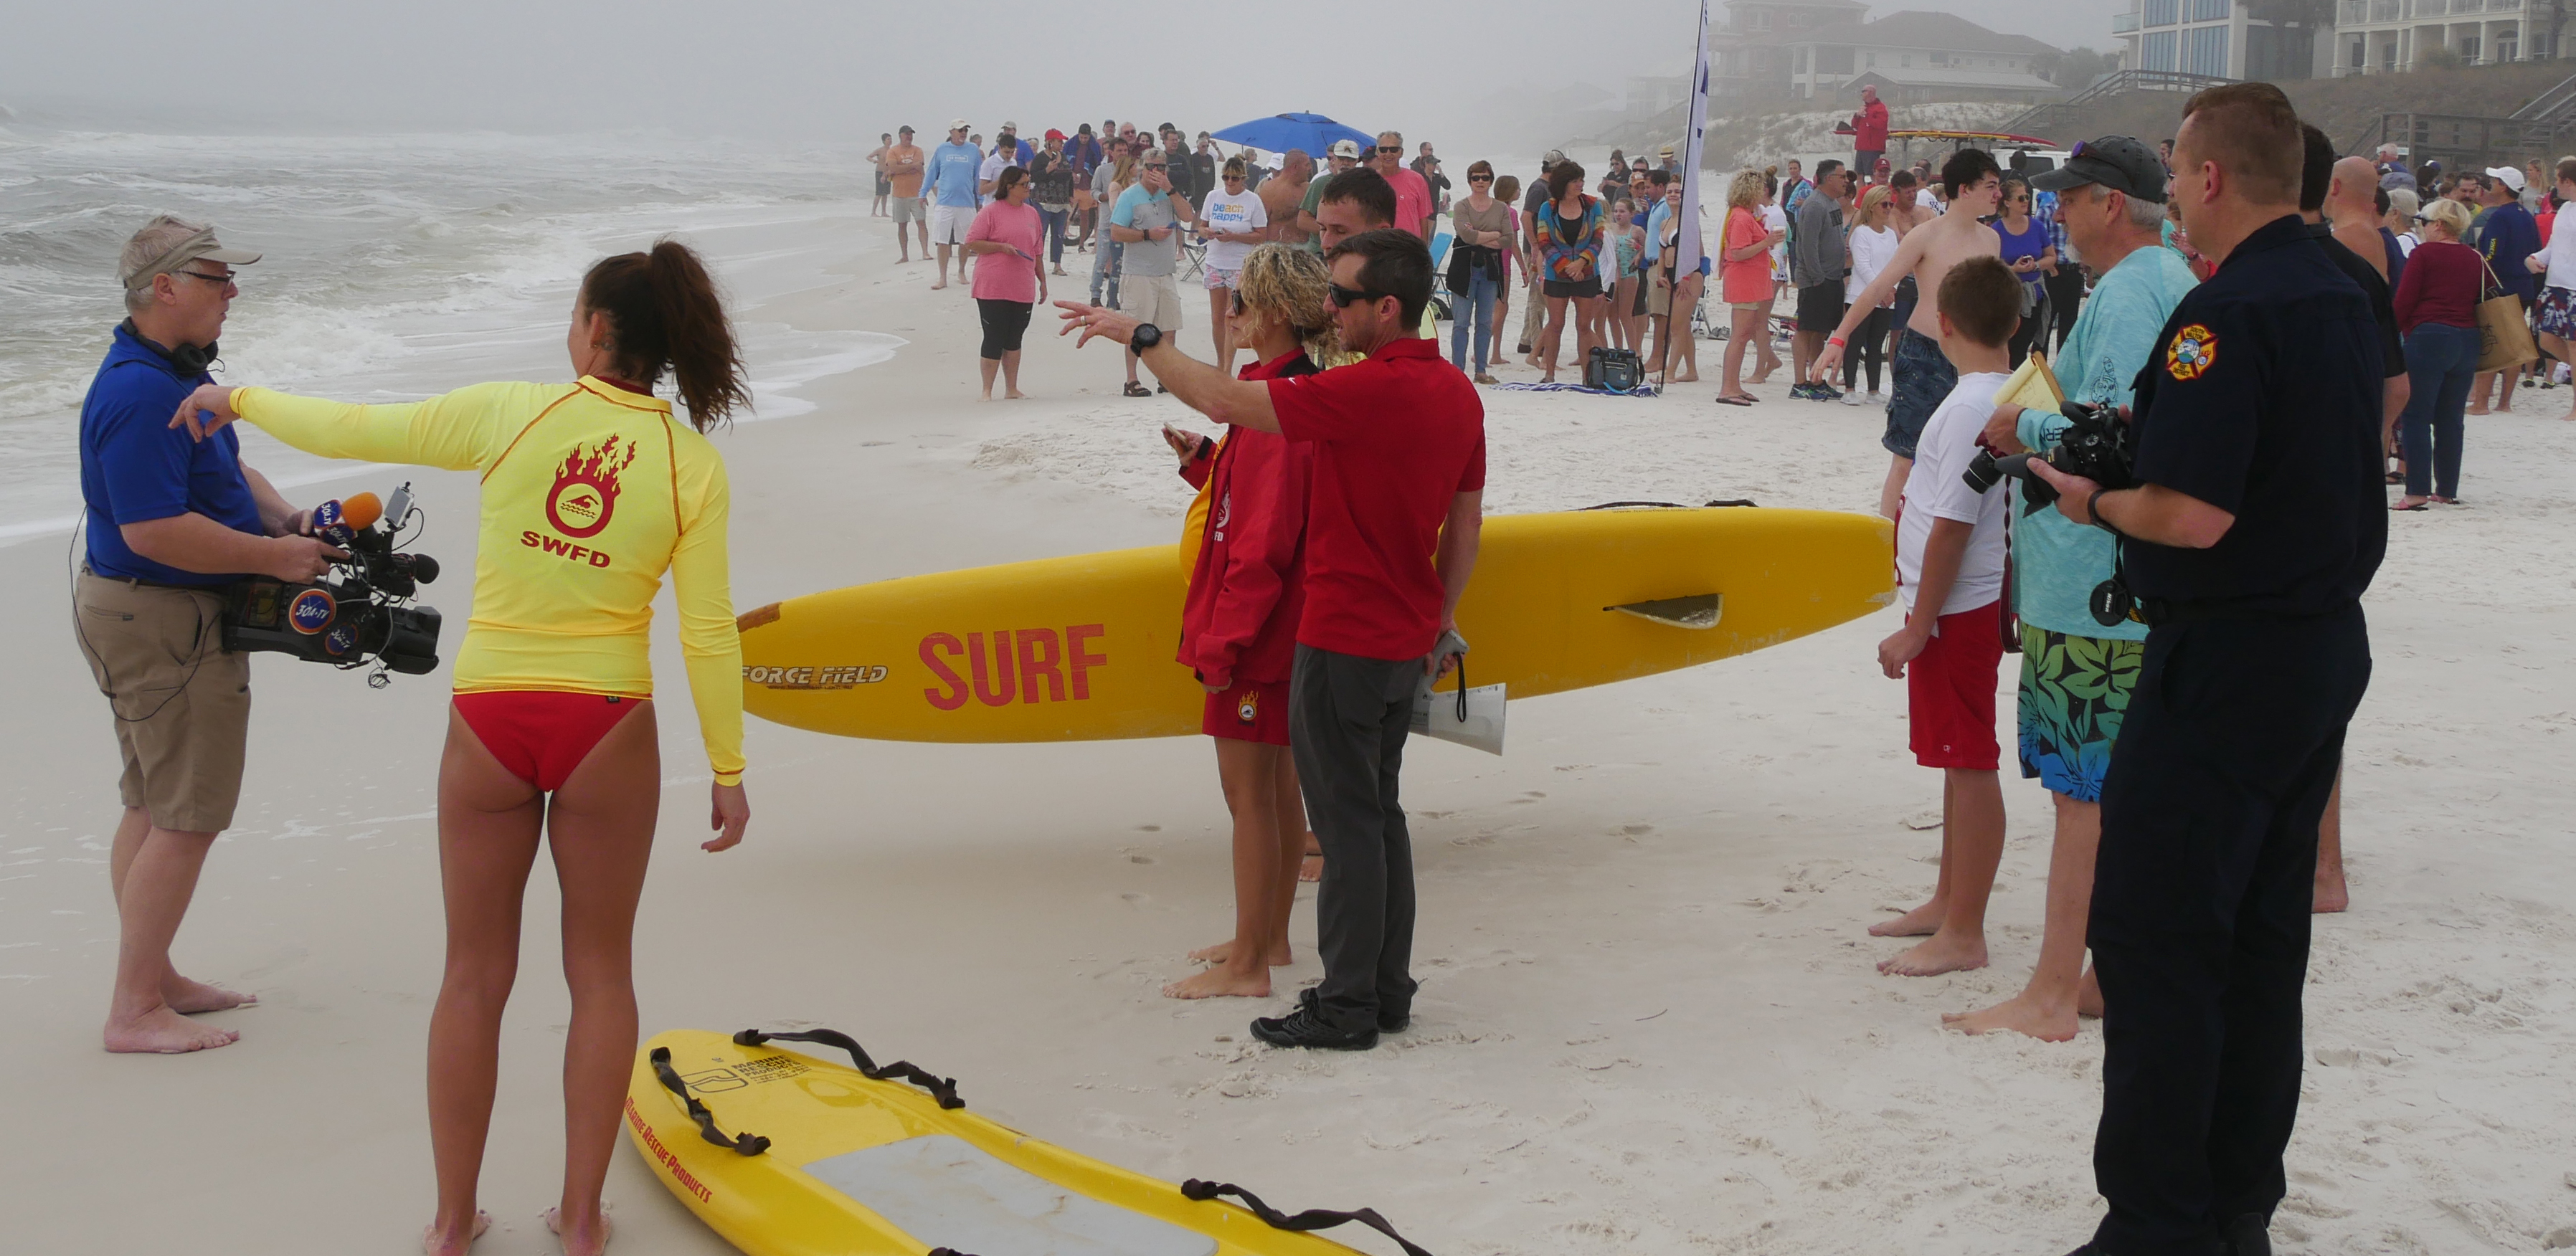 SWFD Awarded Beach Safety Contract